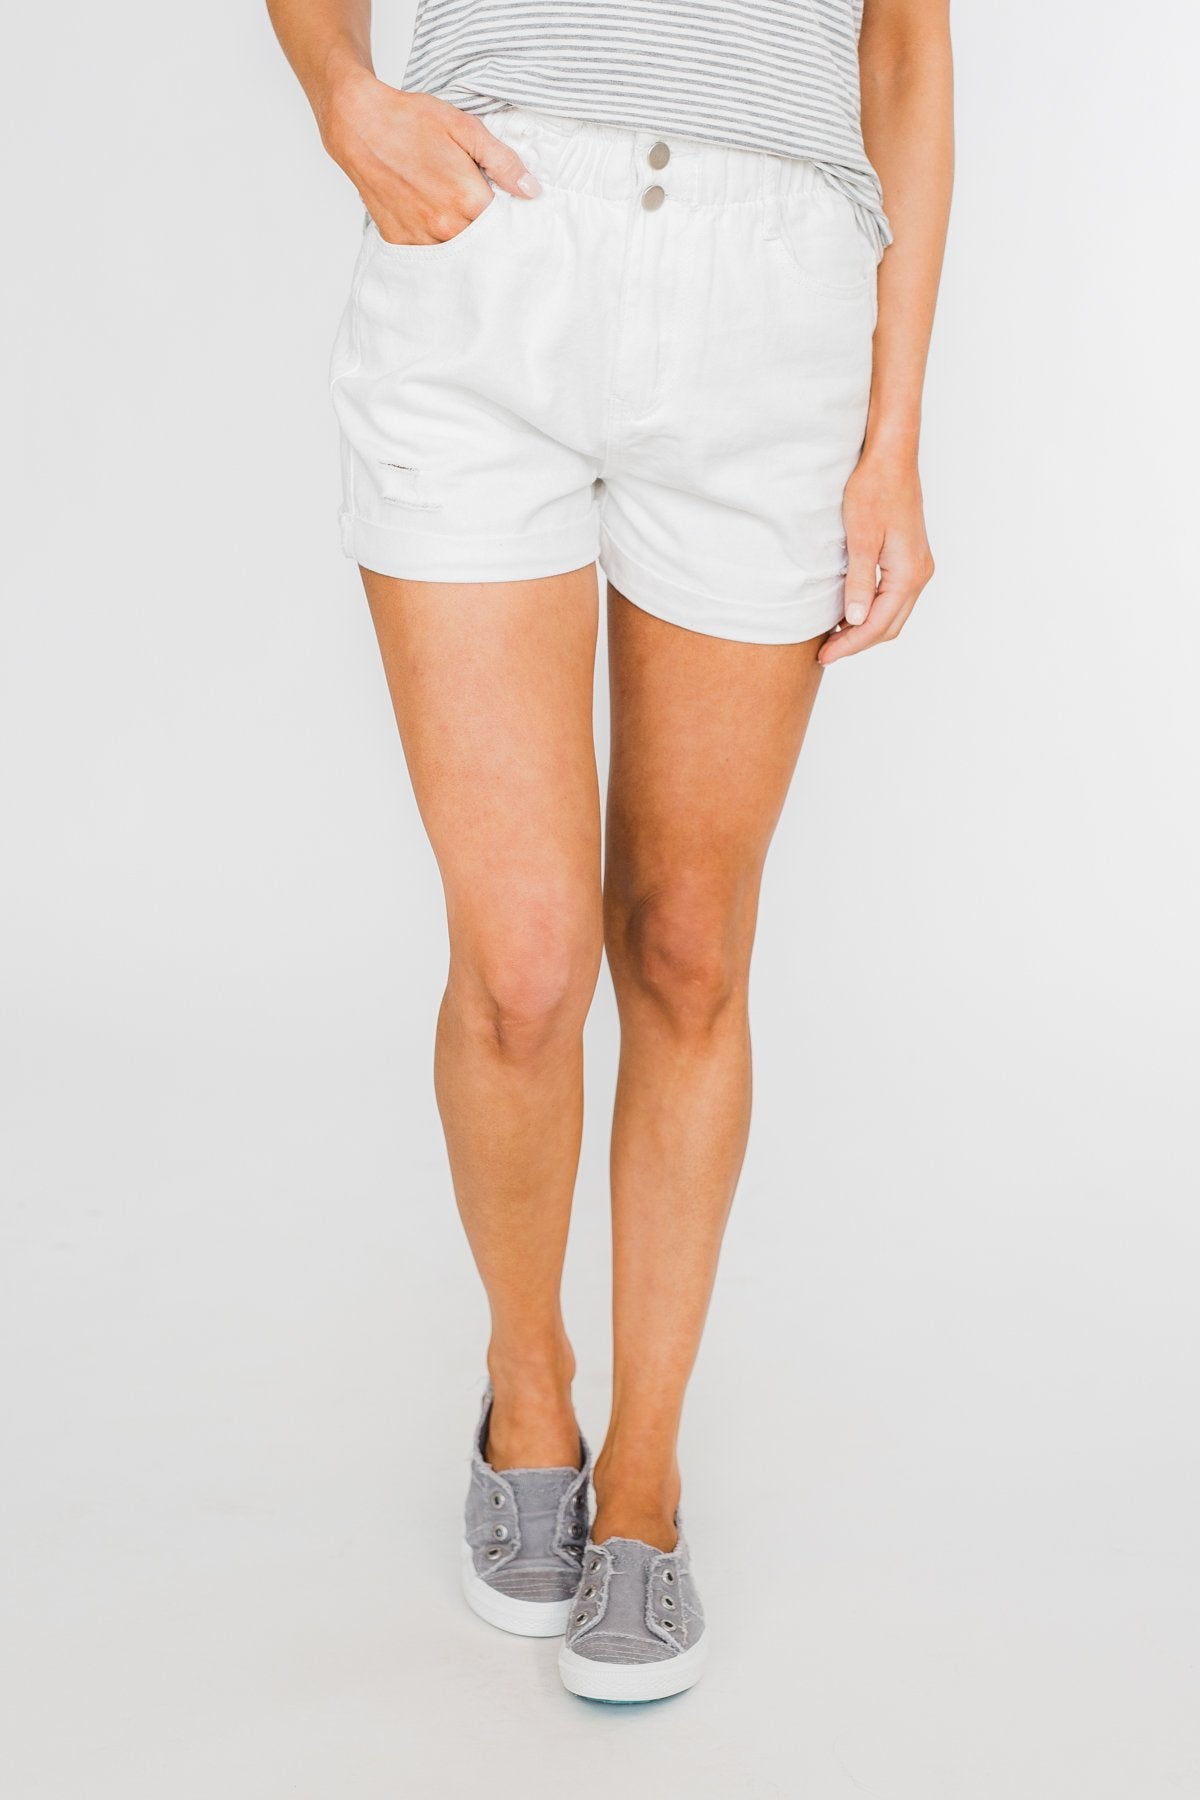 Cinched Waist Shorts- White